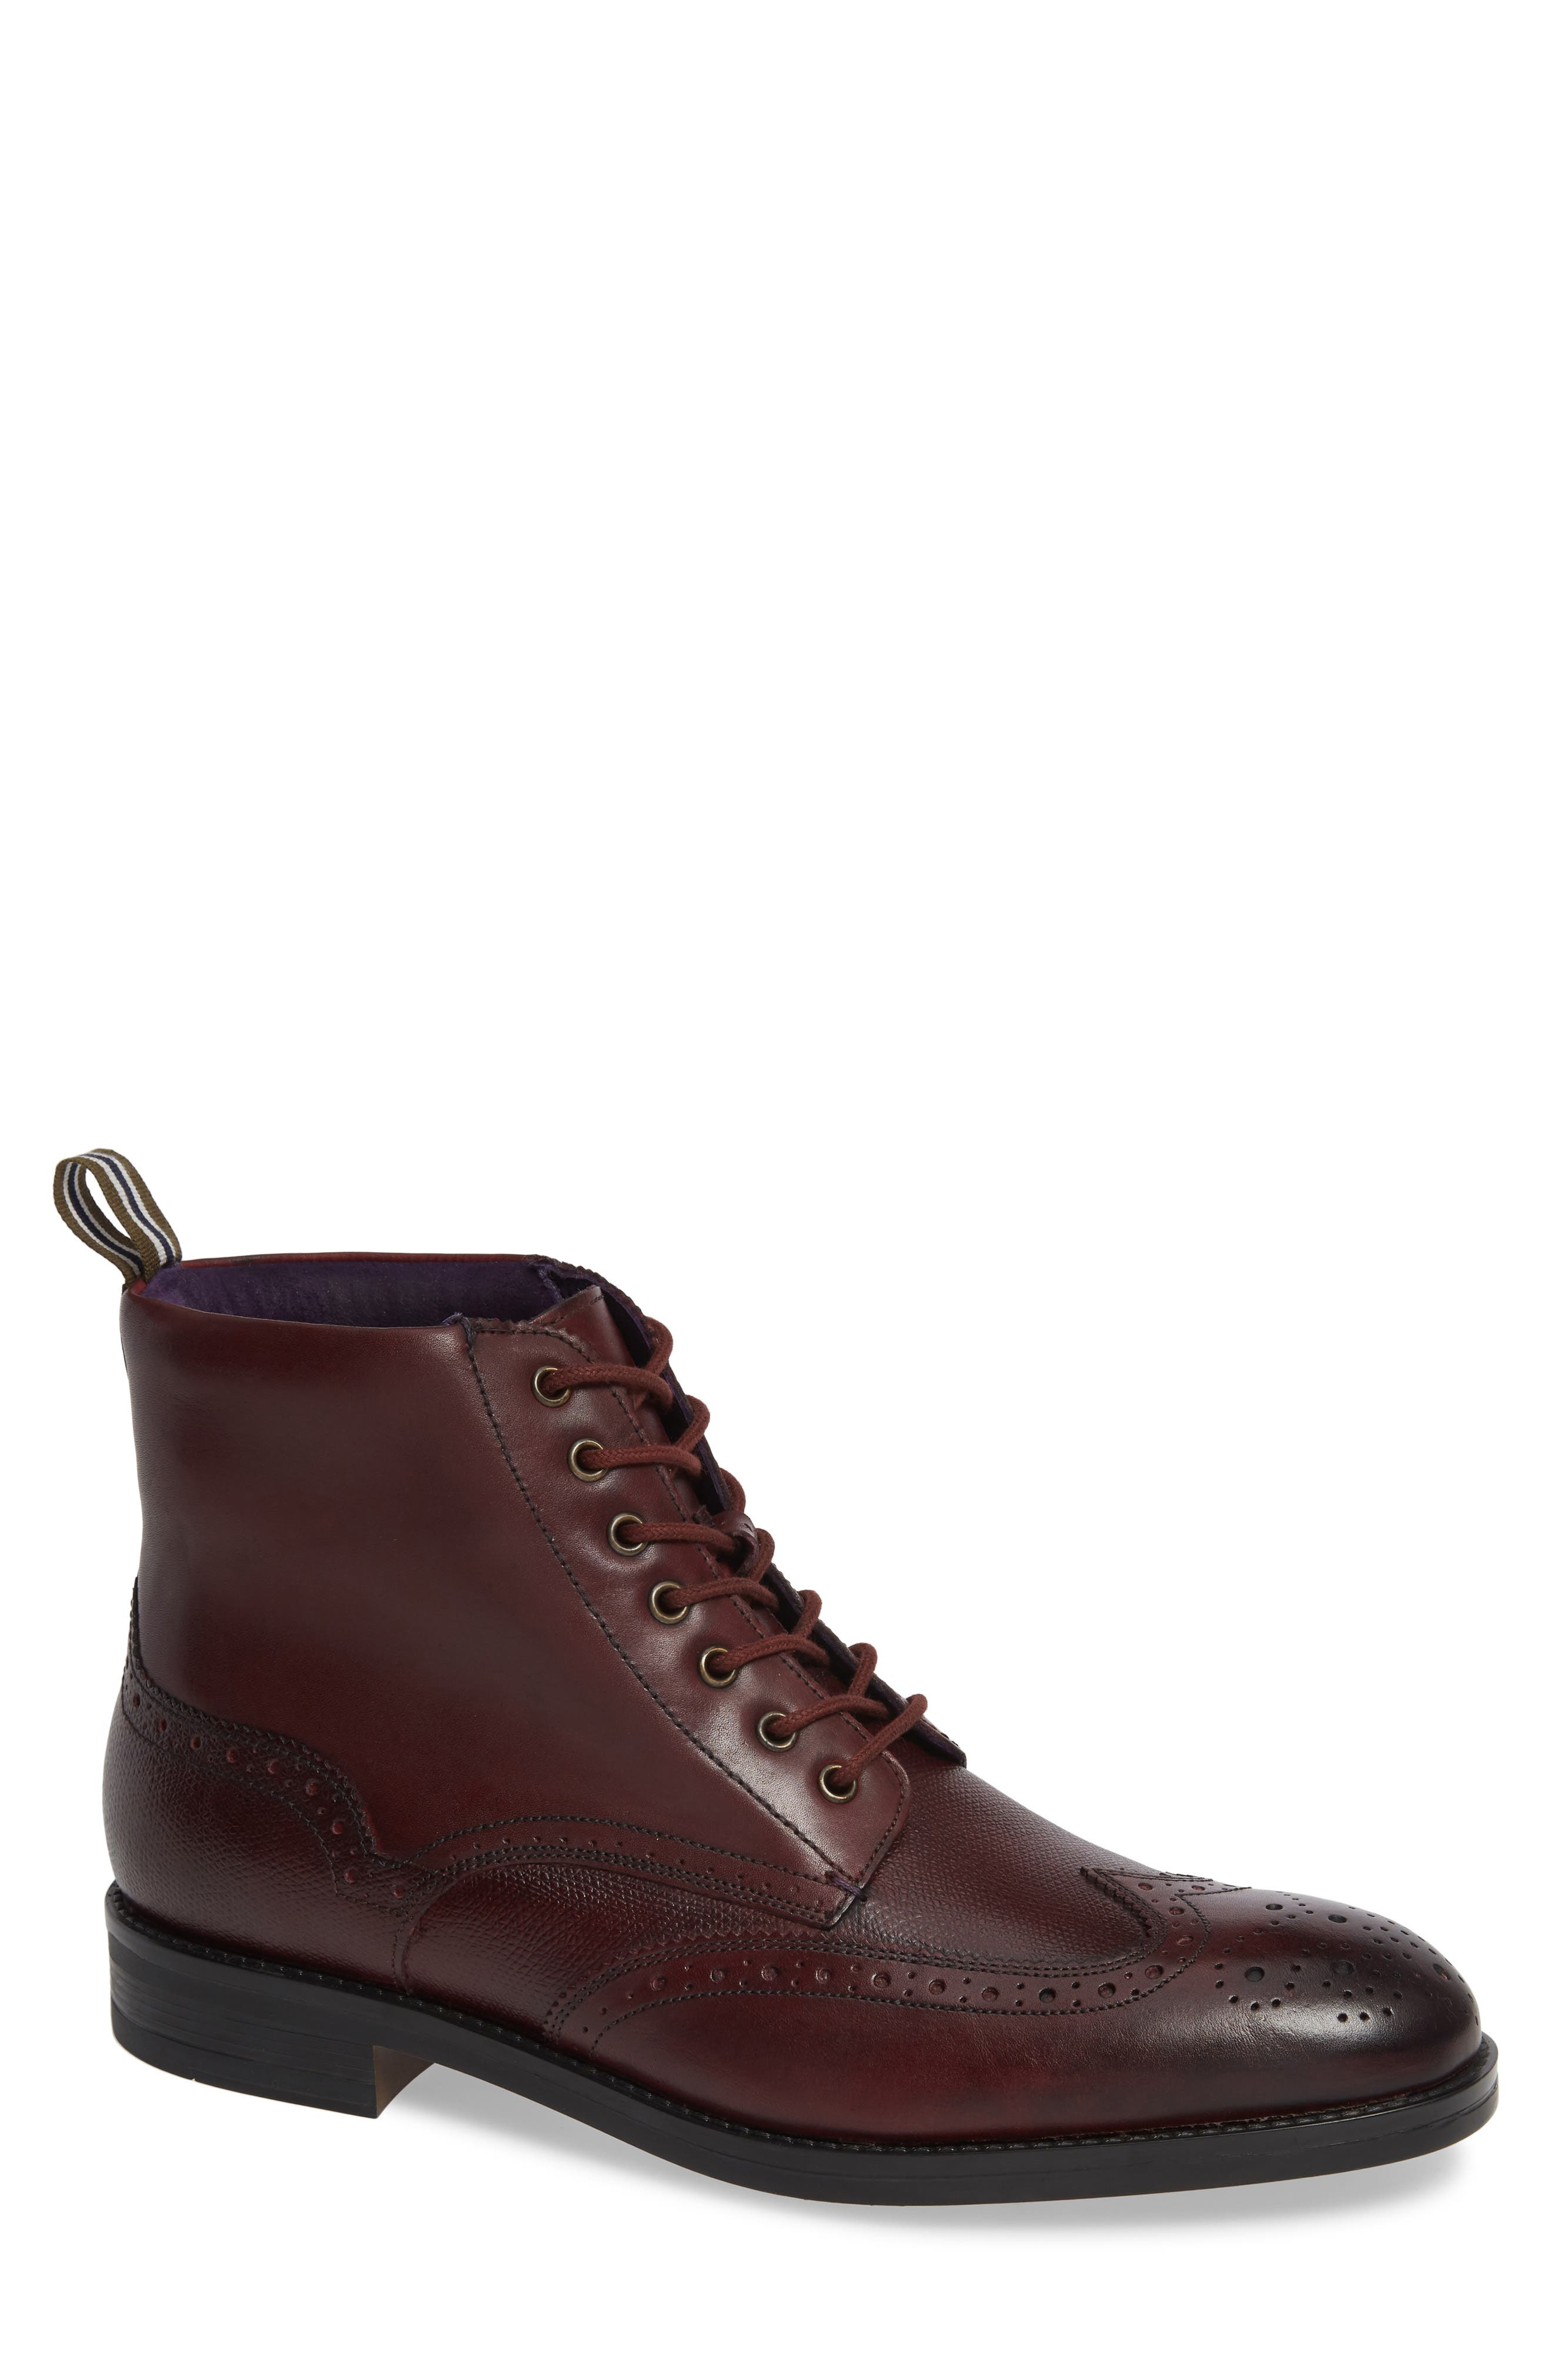 Brogue Ankle Boot,                         Main,                         color, DARK RED LEATHER